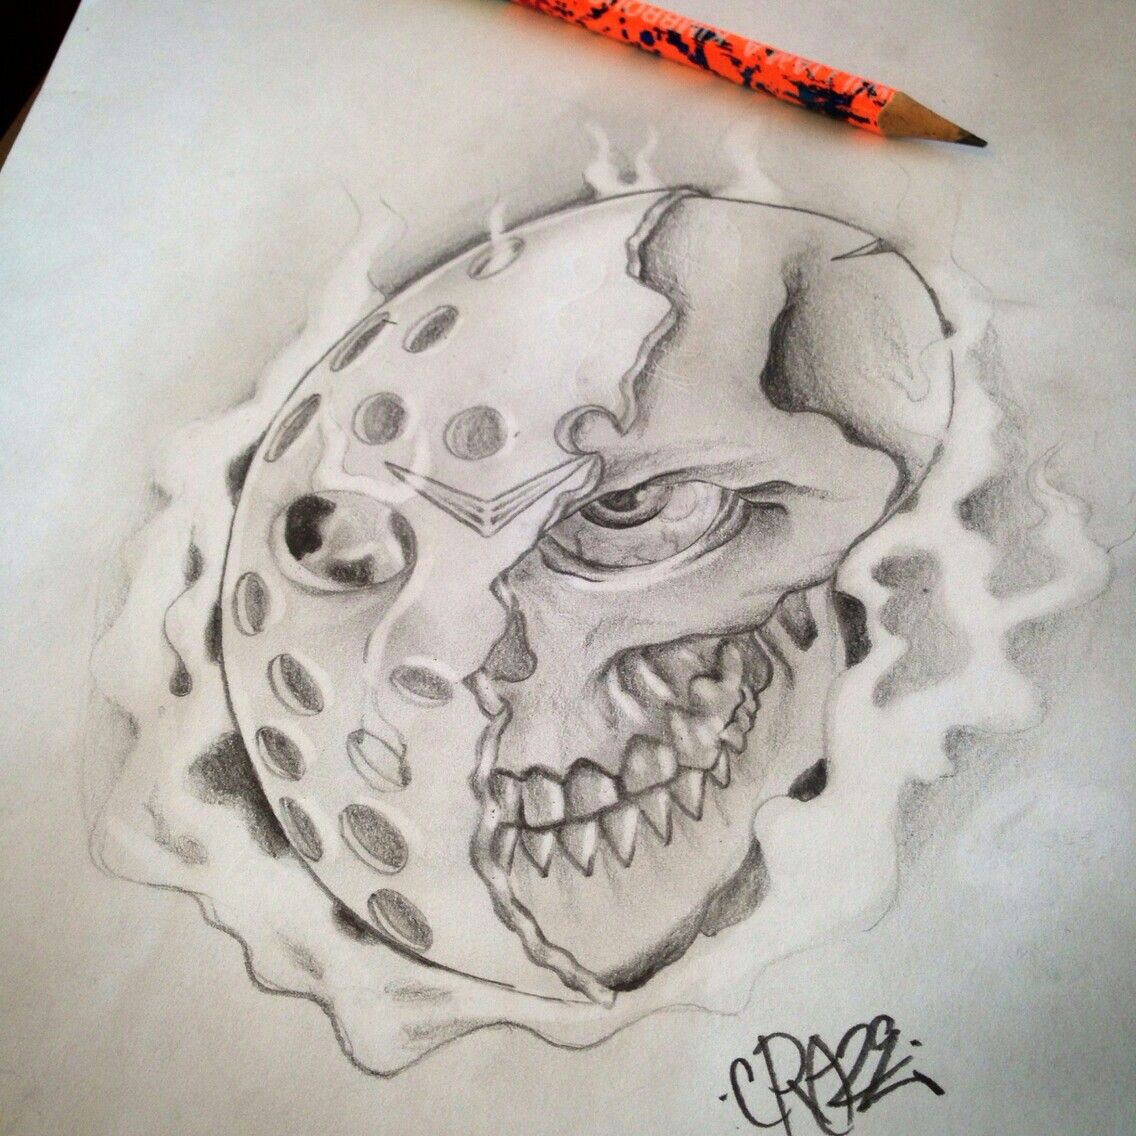 Pin by The Slasher on Friday the 13th Halloween drawings